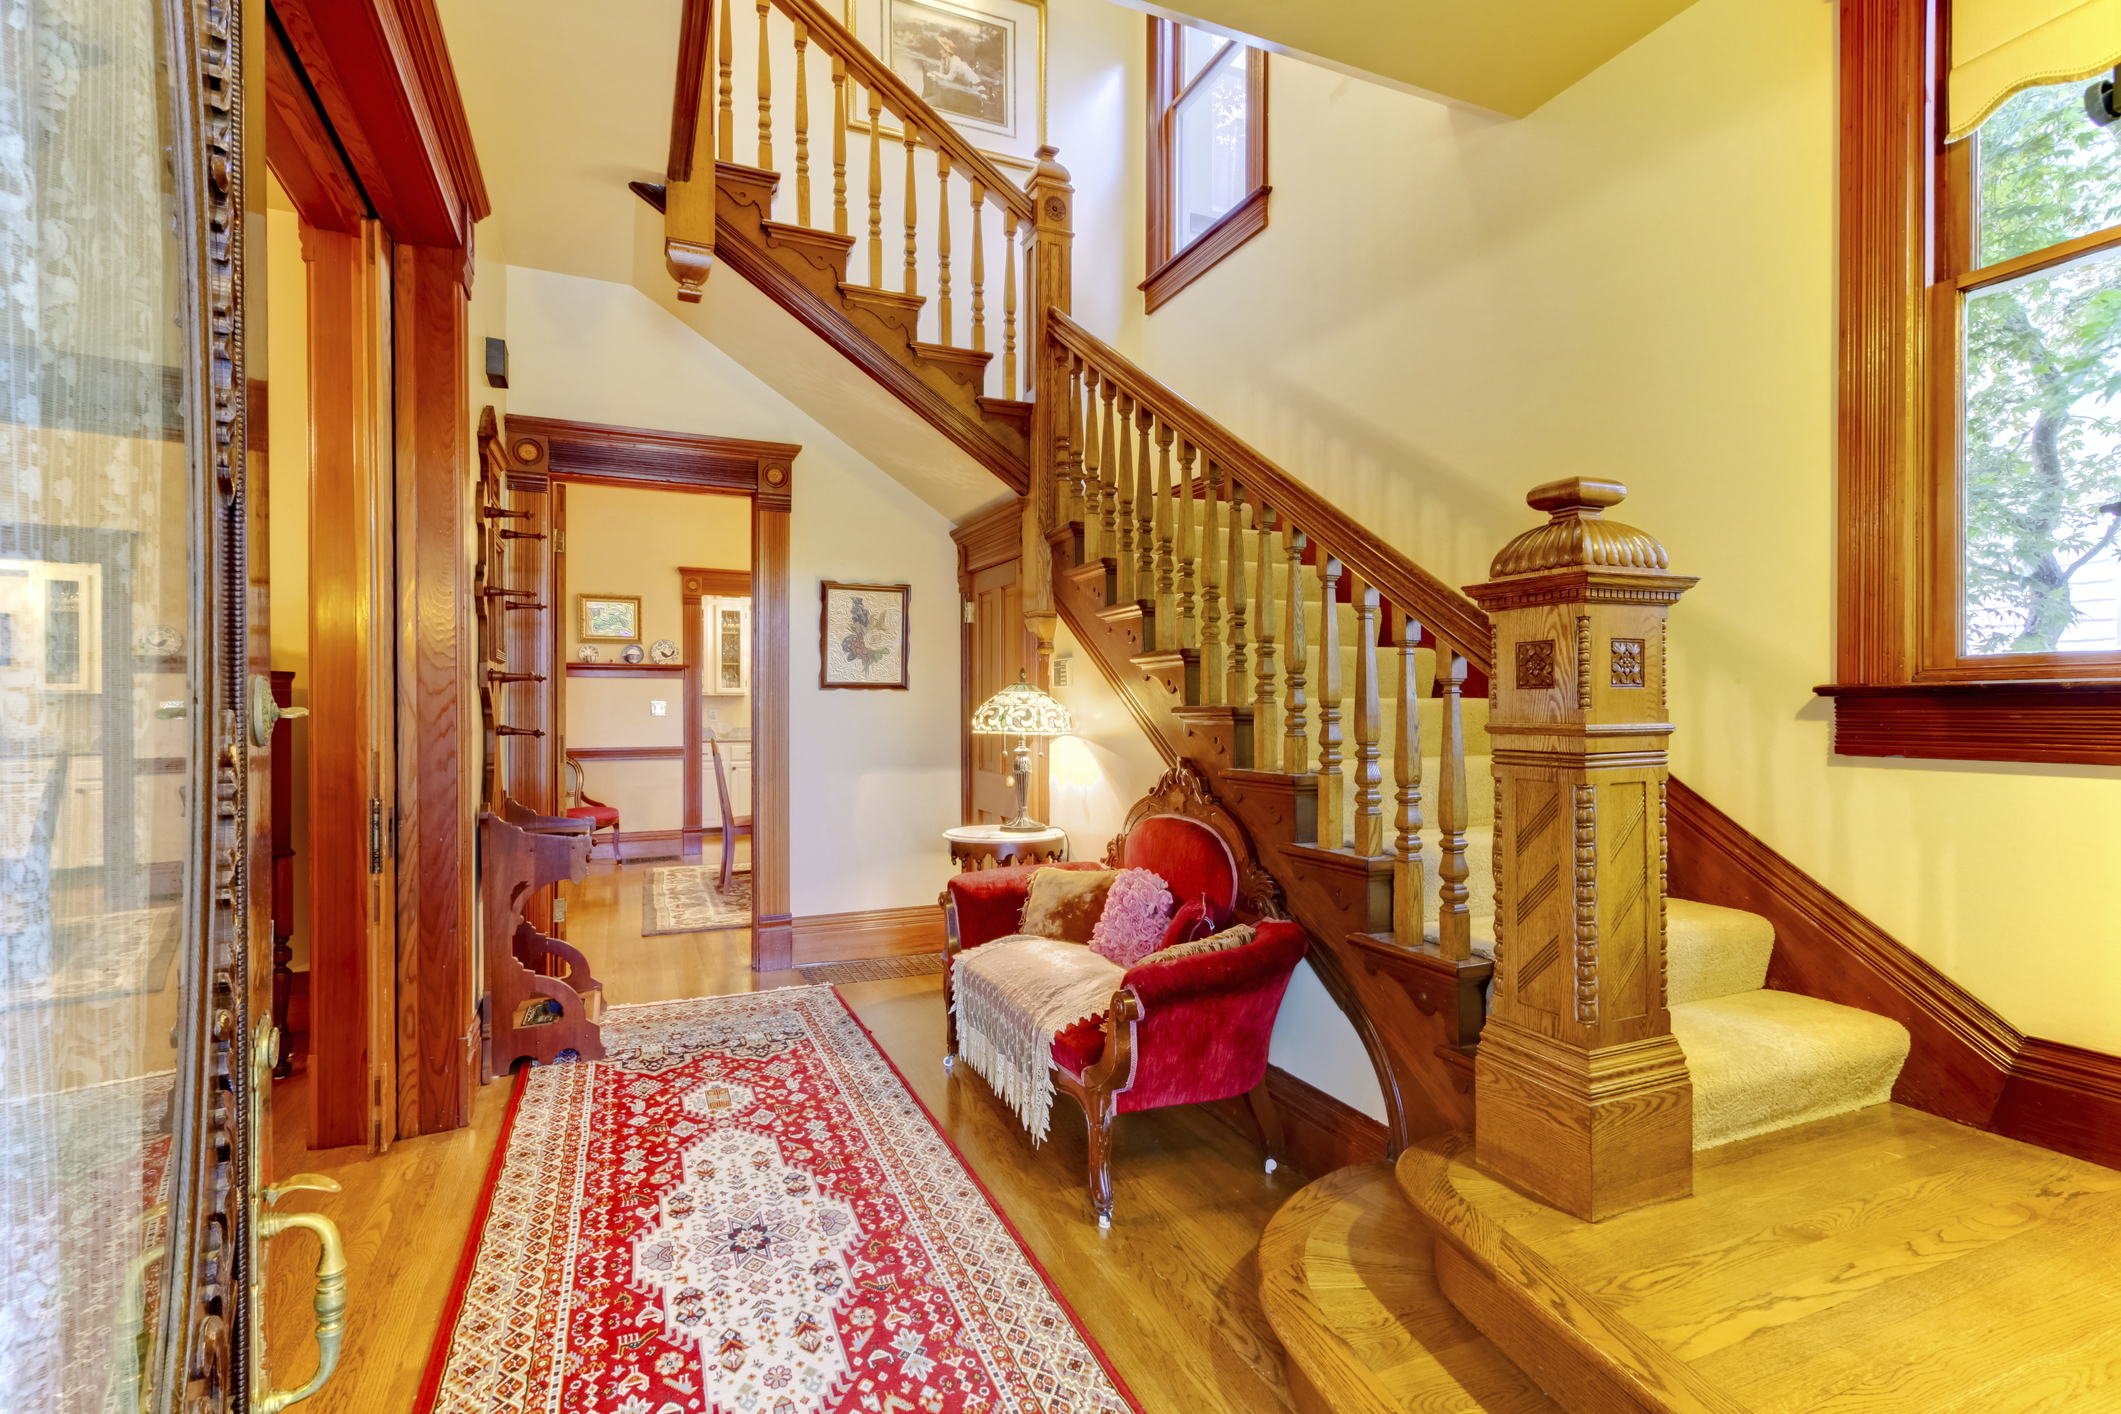 Bright hallway with colourful rug